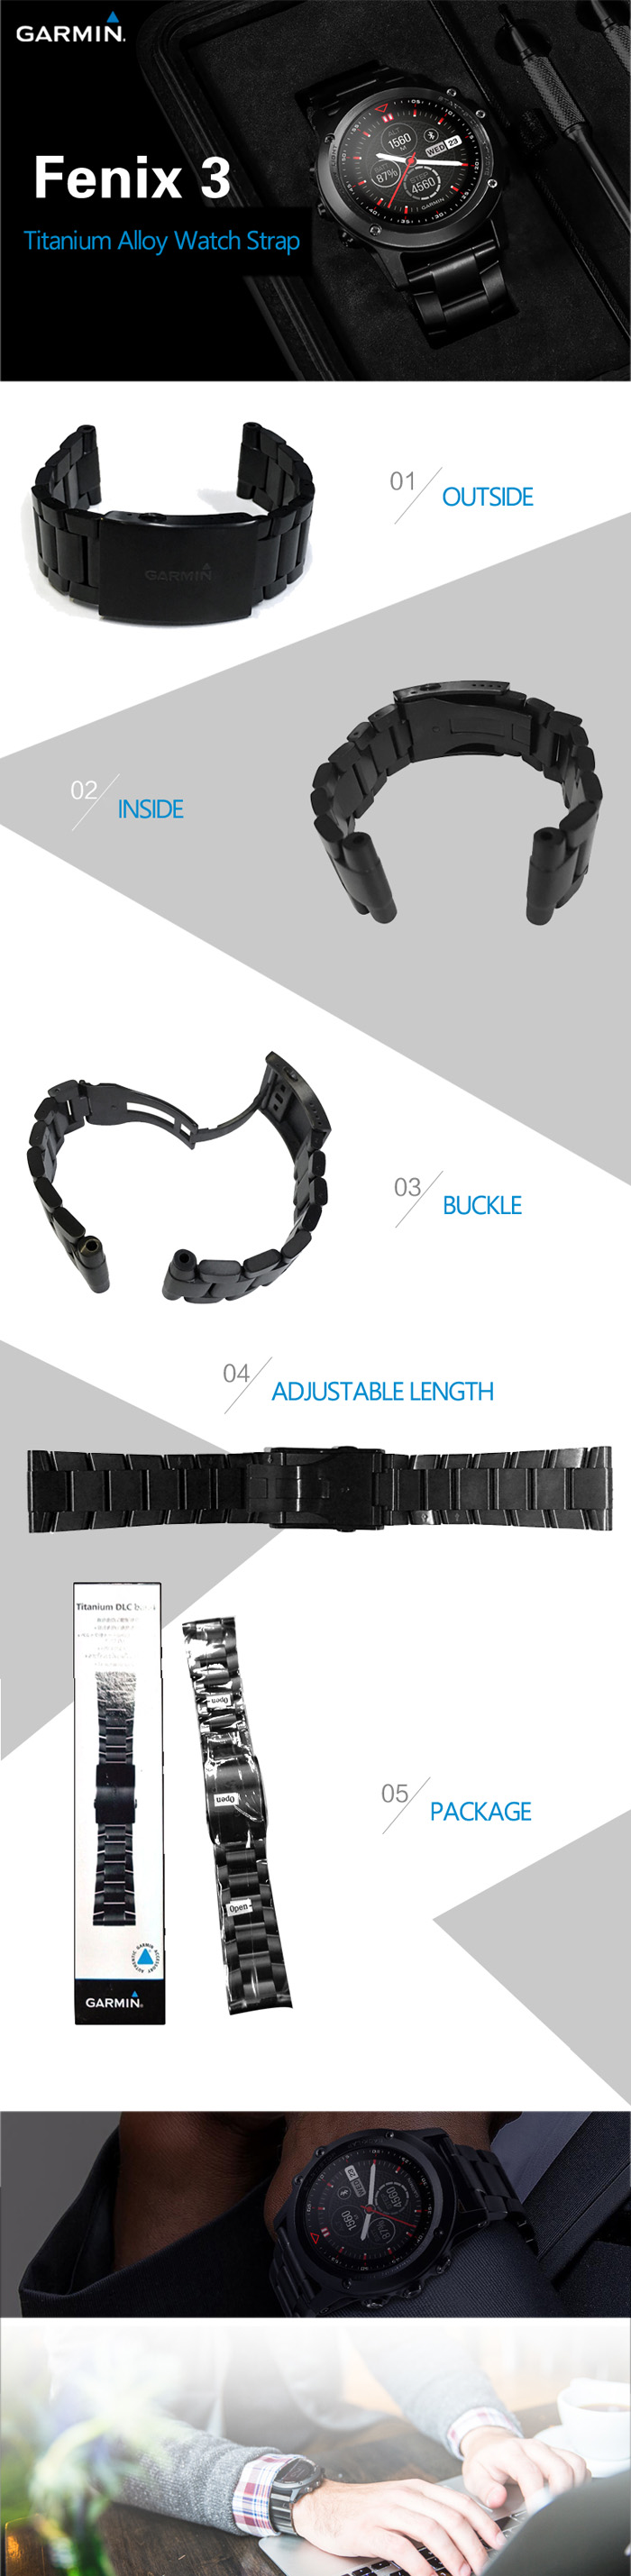 Garmin Watch Band with Titanium Alloy Material for Fenix 3